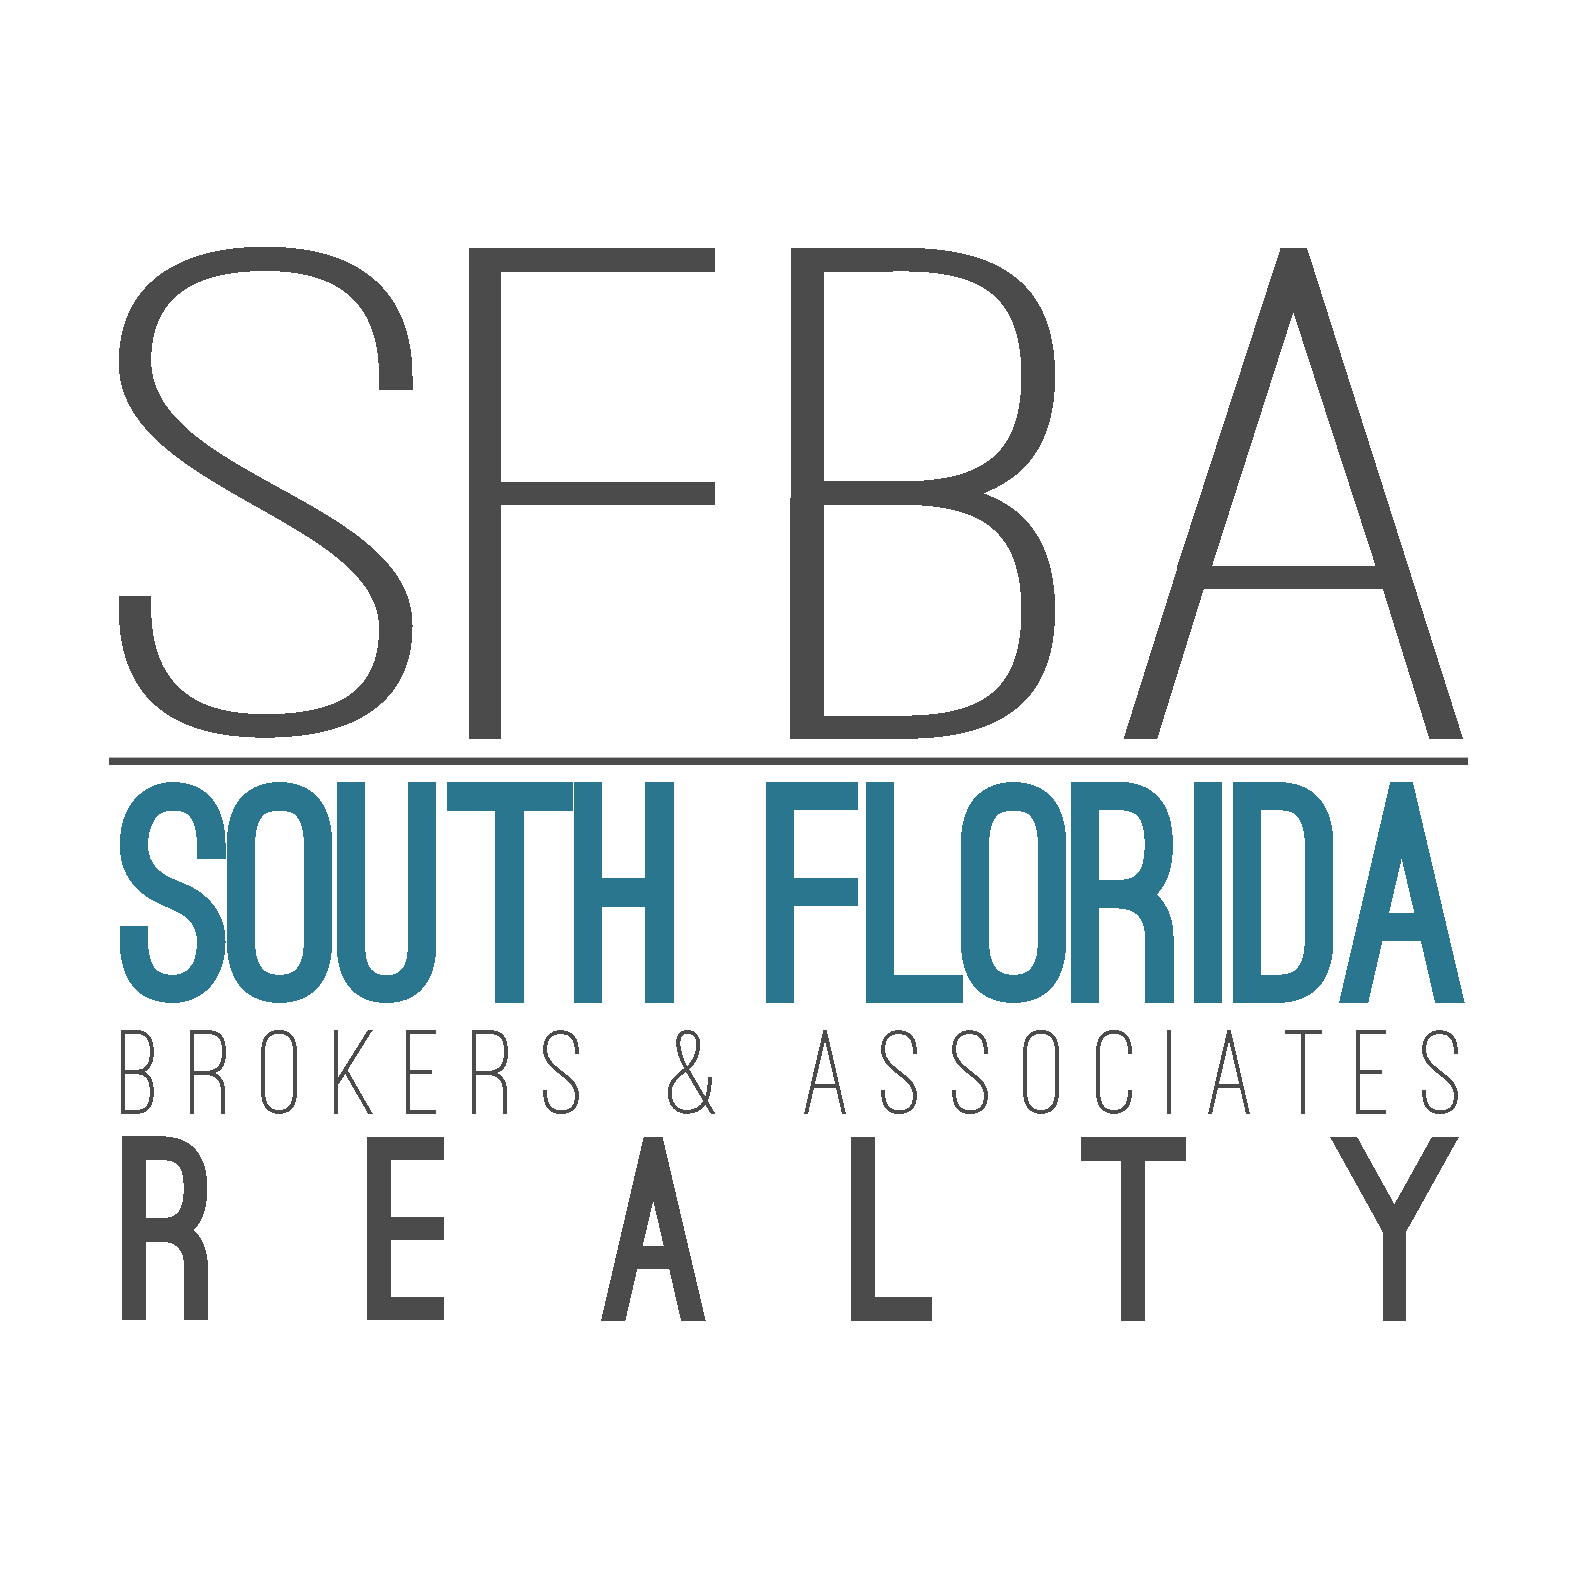 South Florida Brokers & Associates